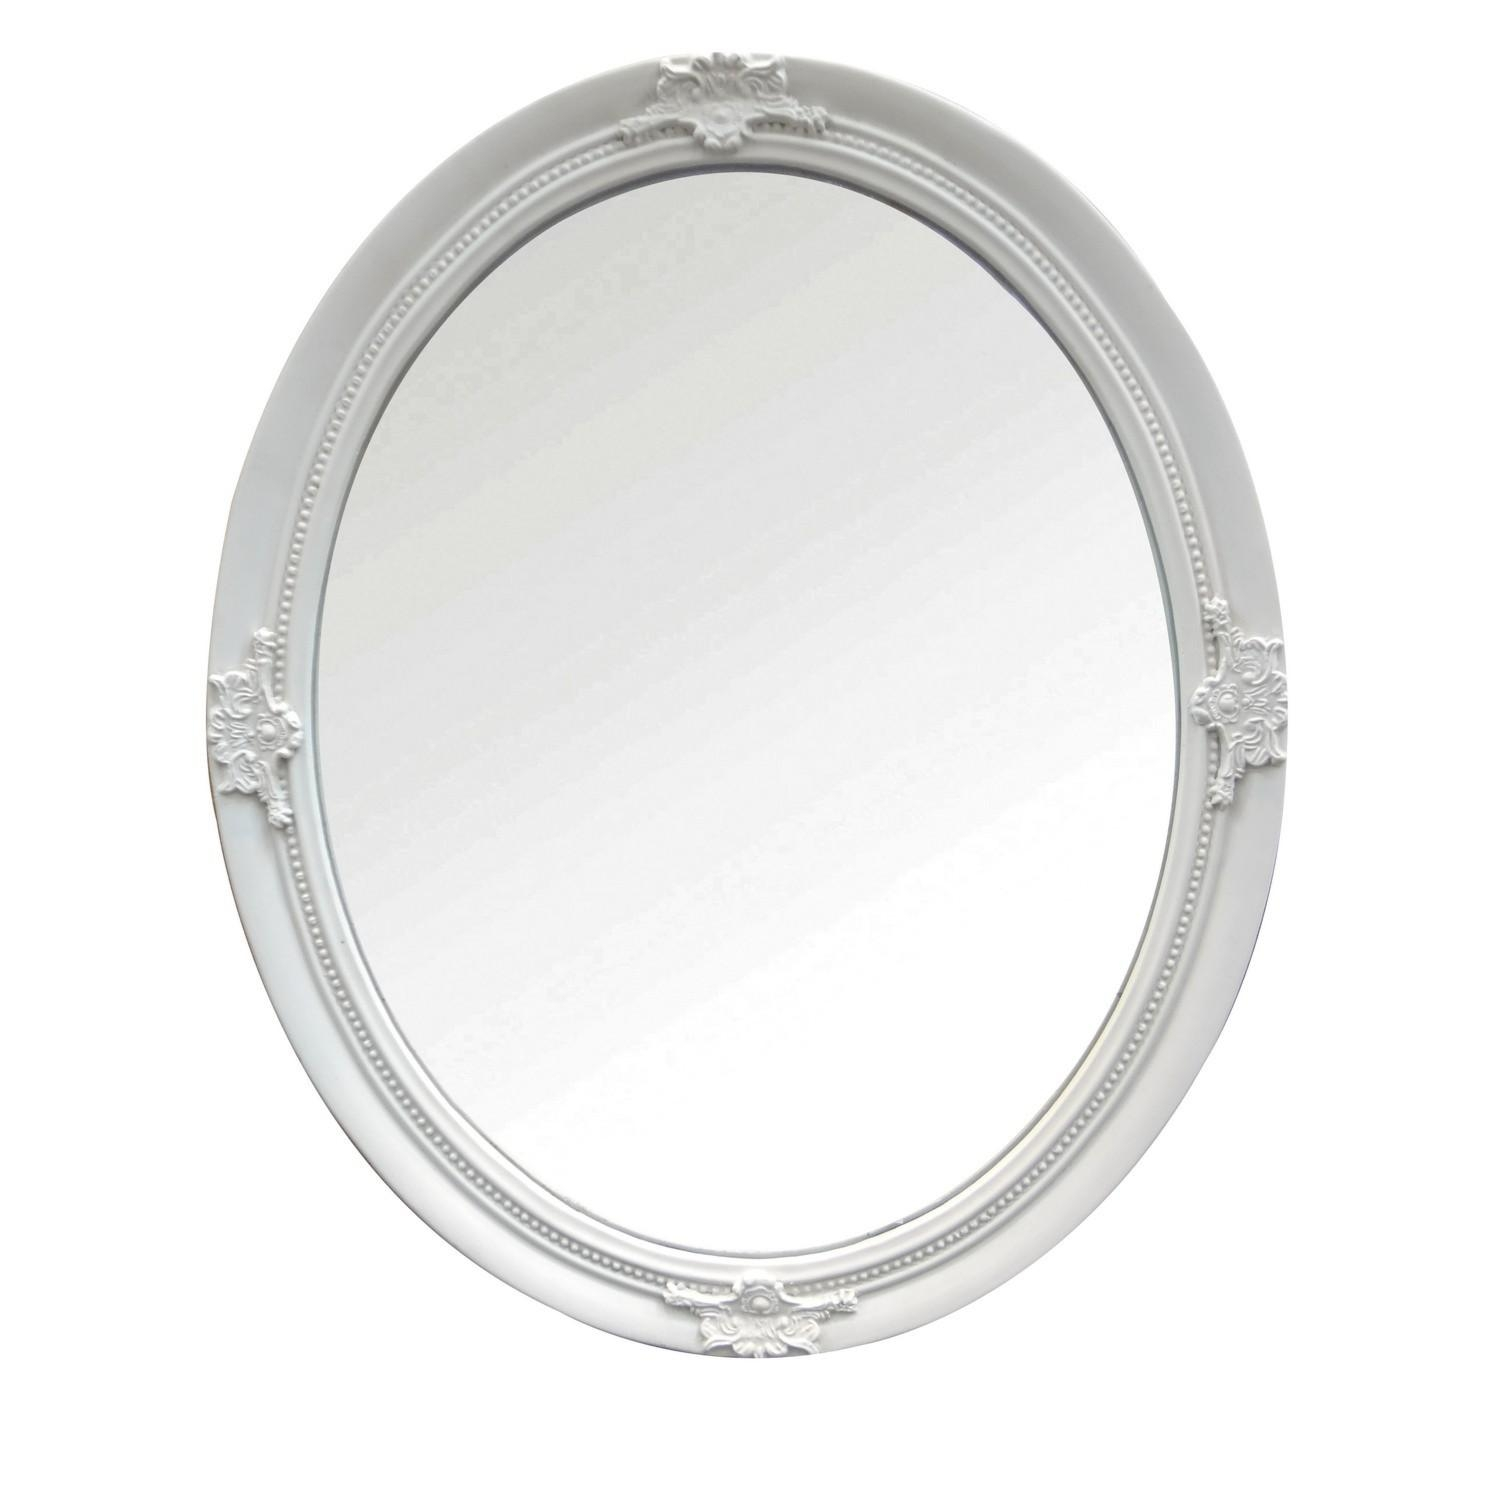 Ornate Ivory Oval Mirror With Ornate Oval Mirrors (Image 11 of 20)